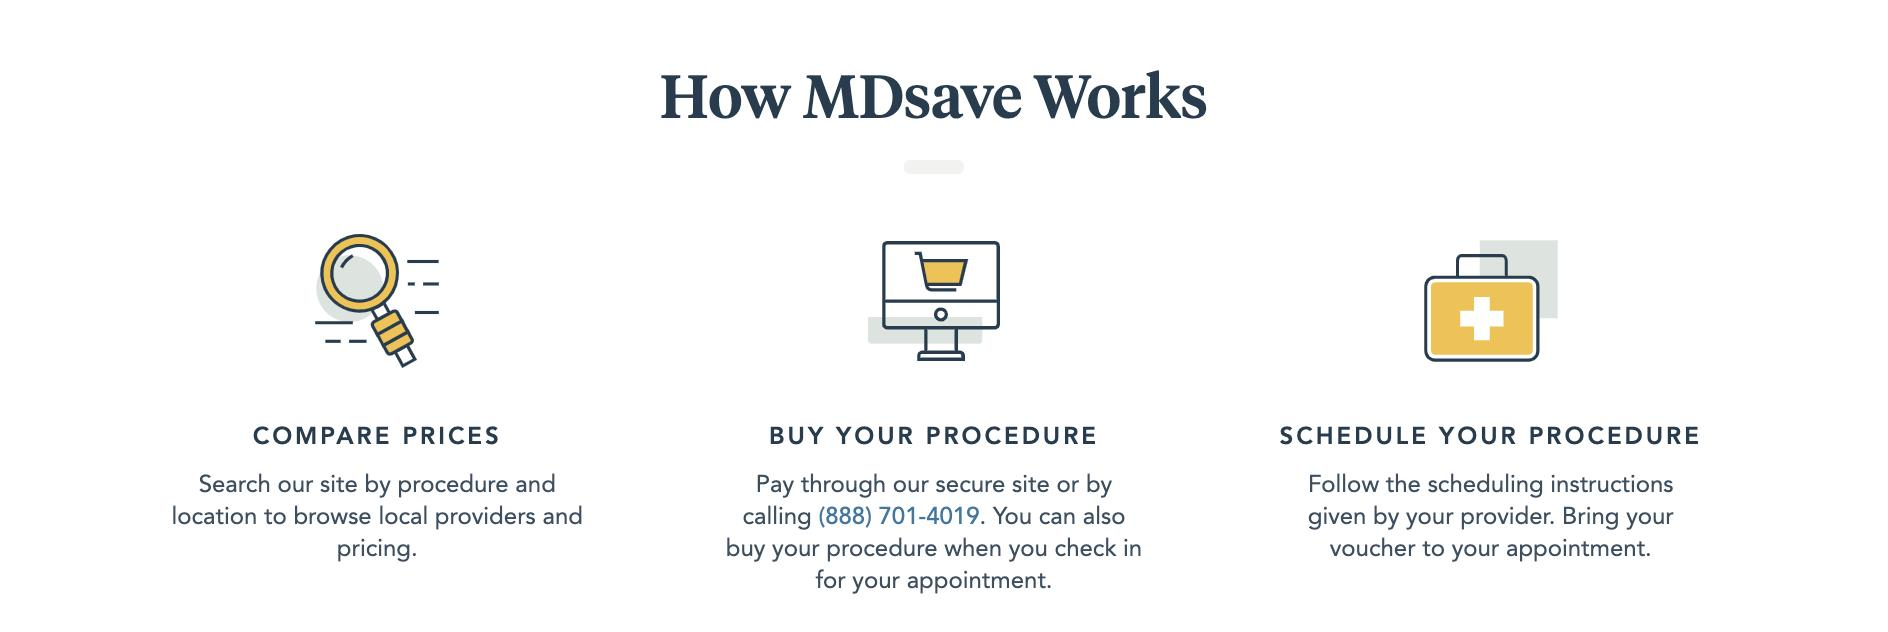 How MDsave Works